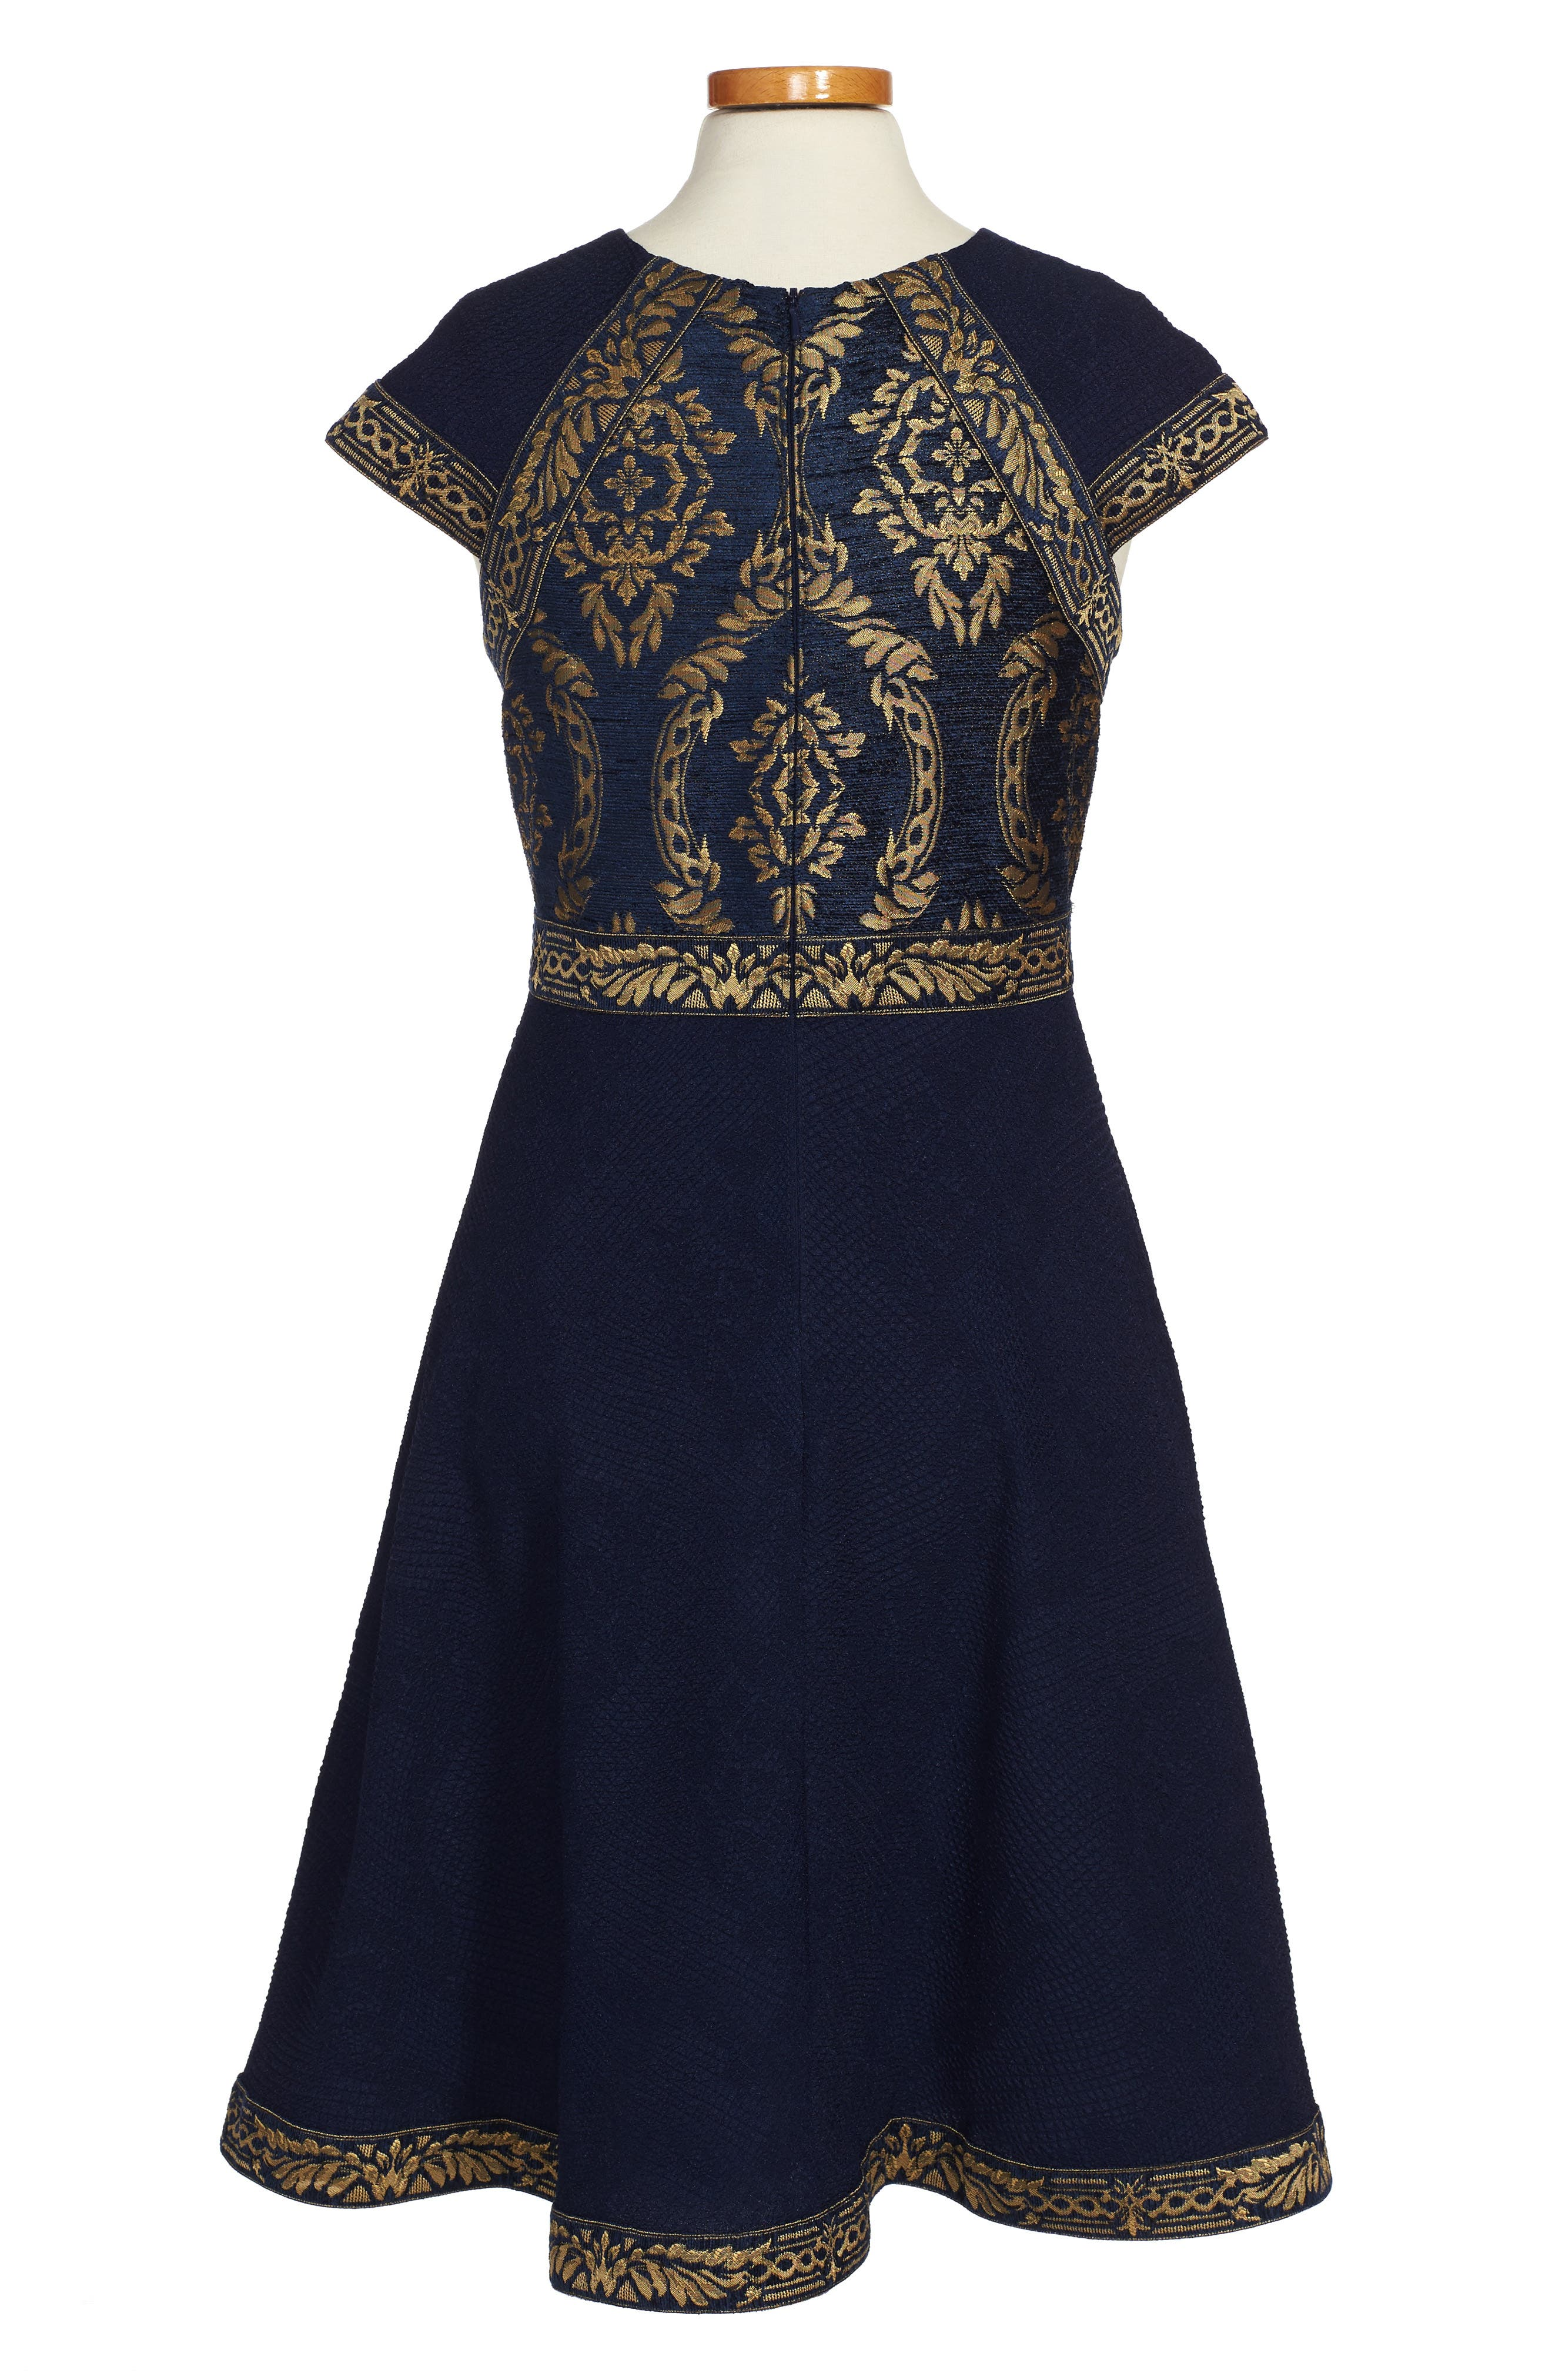 TADASHI SHOJI,                             Brocade Embroidery Party Dress,                             Alternate thumbnail 2, color,                             400